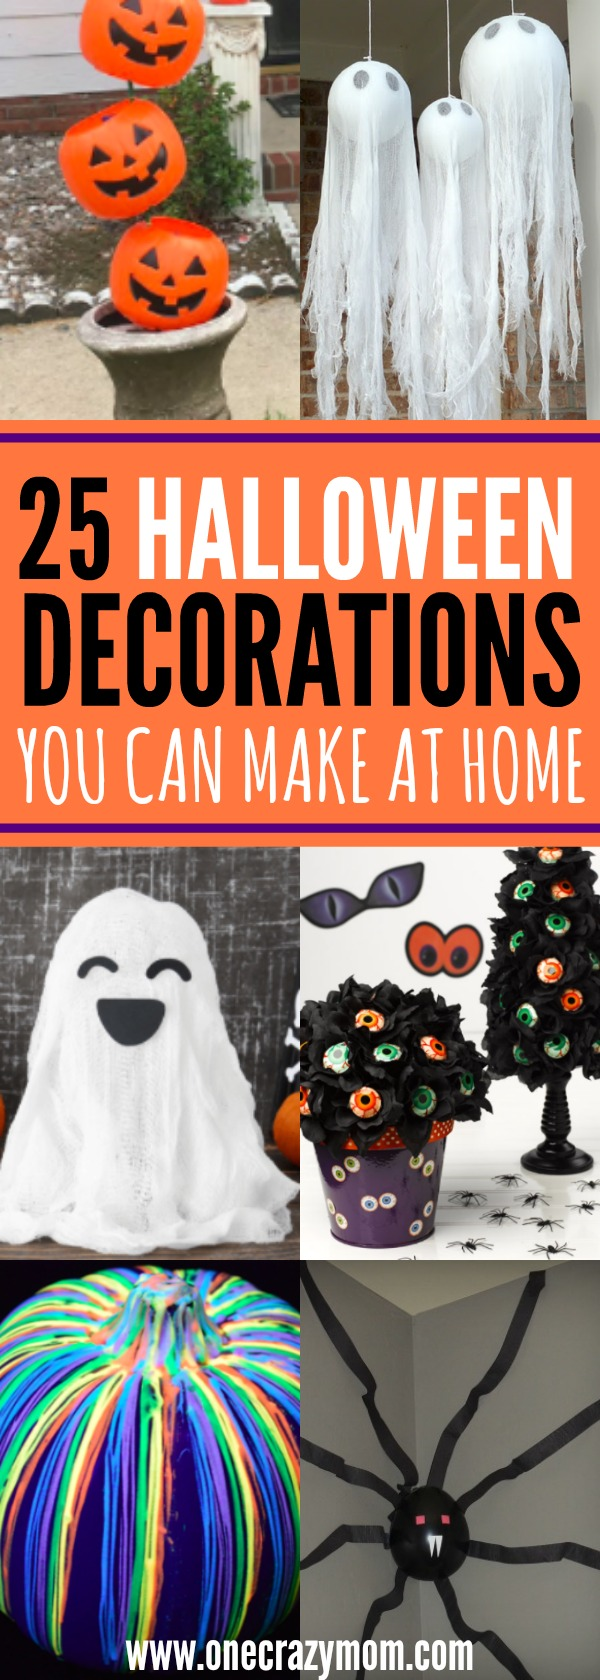 halloween decorations that you can make at home